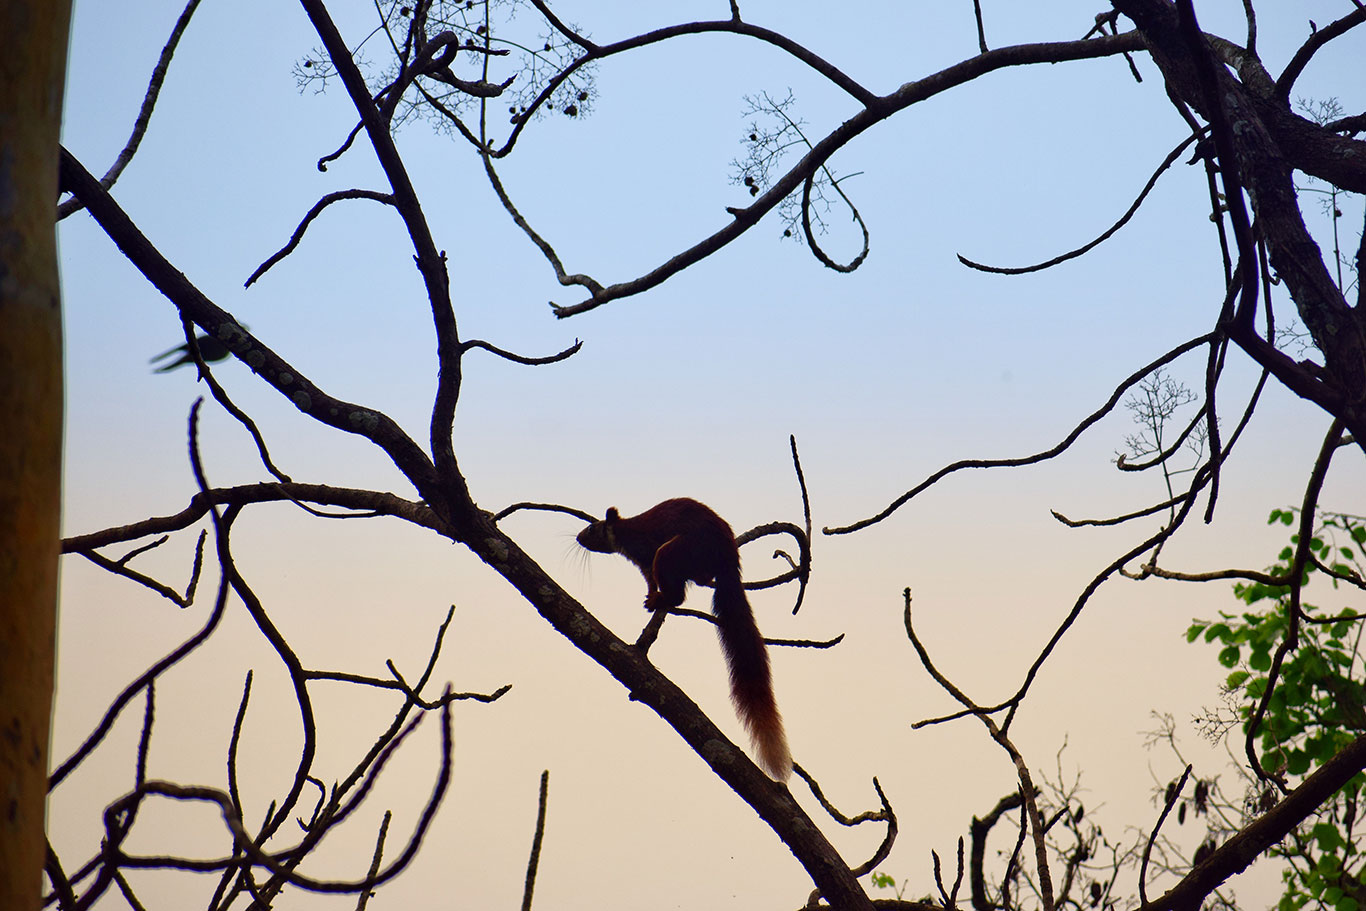 Giant Malabar Squirrel. The malabar flying squirell jumps from one branch to another.